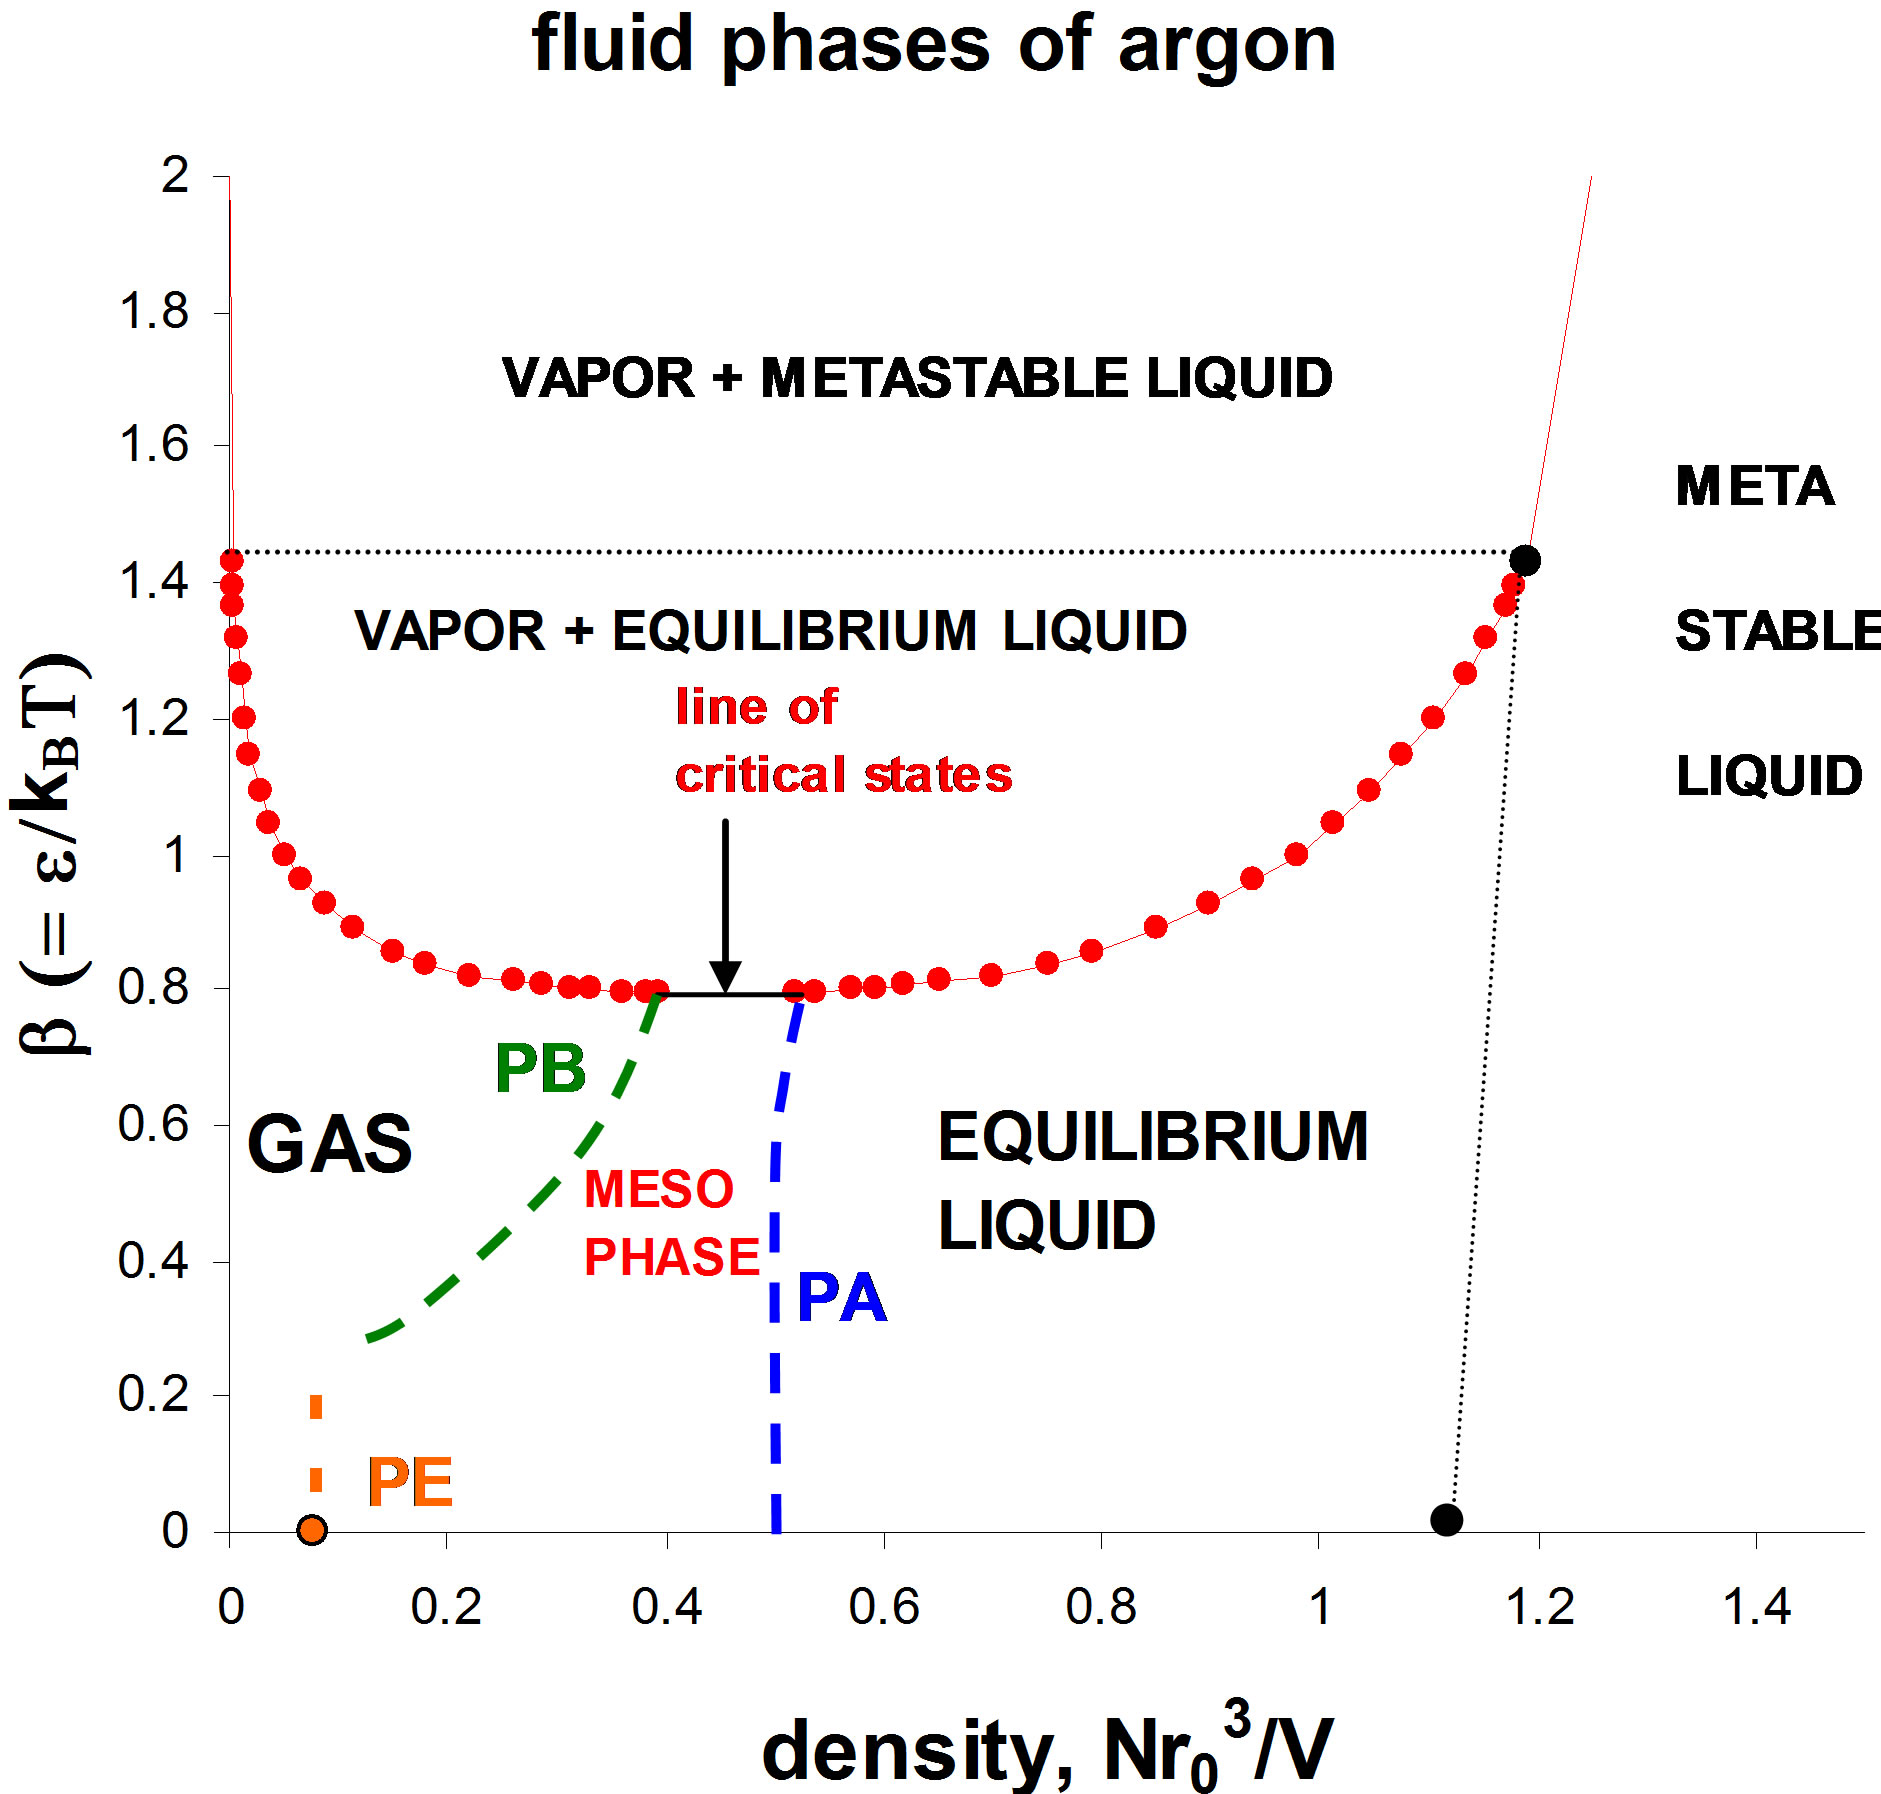 Fluid phases of argon a debate on the absence of van der waals fluid phases of argon a debate on the absence of van der waals critical point pooptronica Images